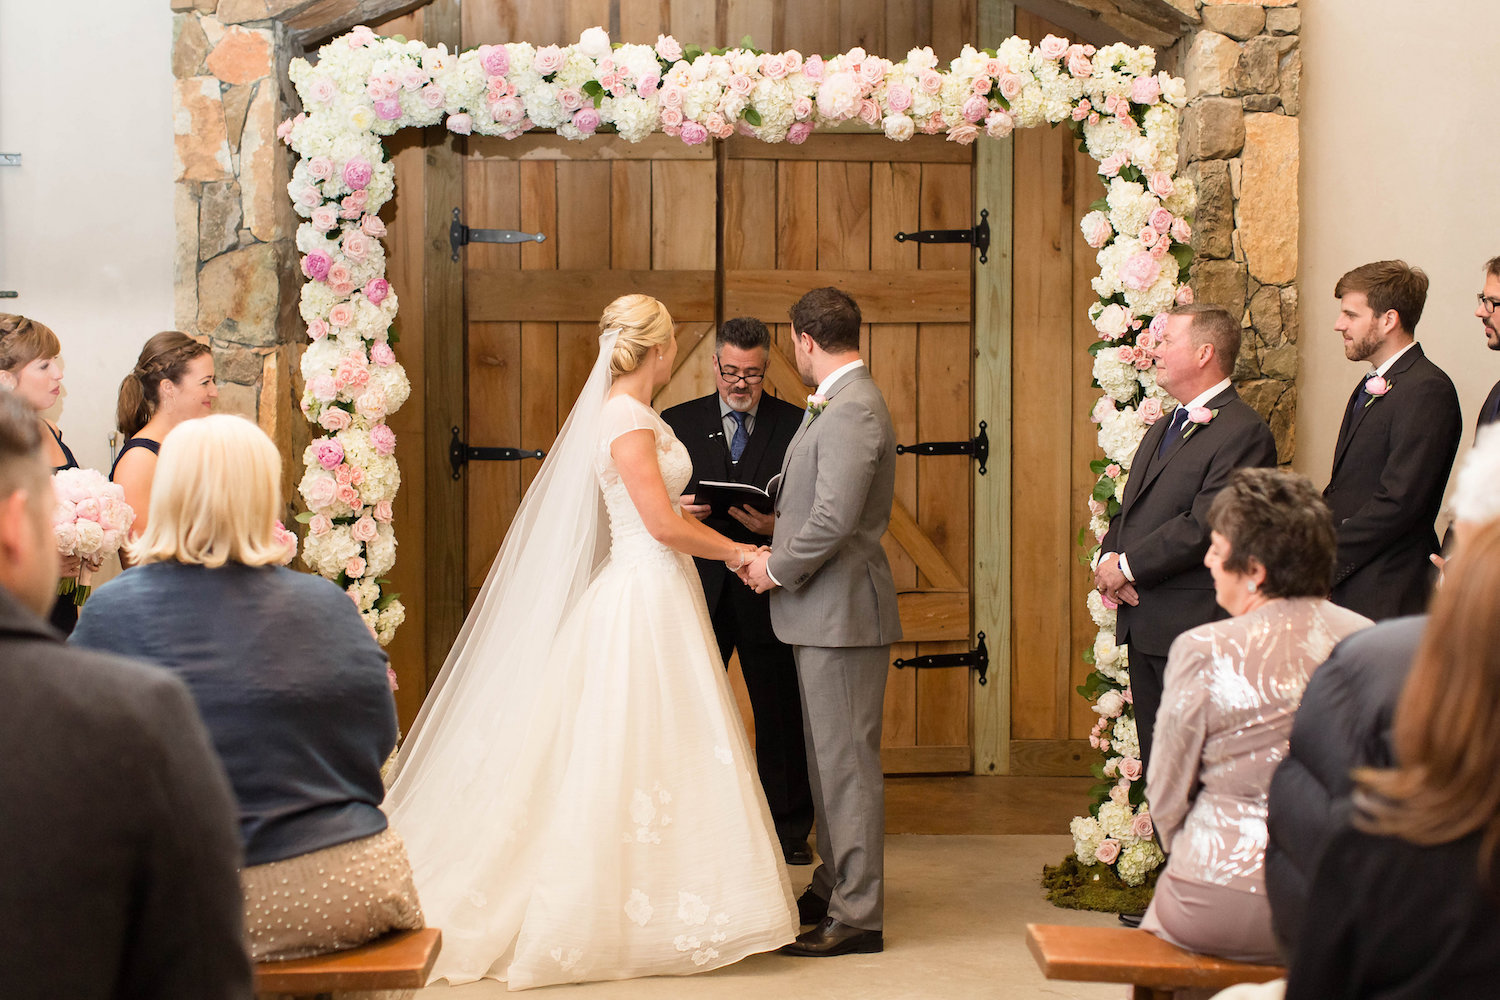 Full floral arch with Peonies, Hydrangea and Garden Roses at Stone Tower Winery. Photography by Candice Adelle.